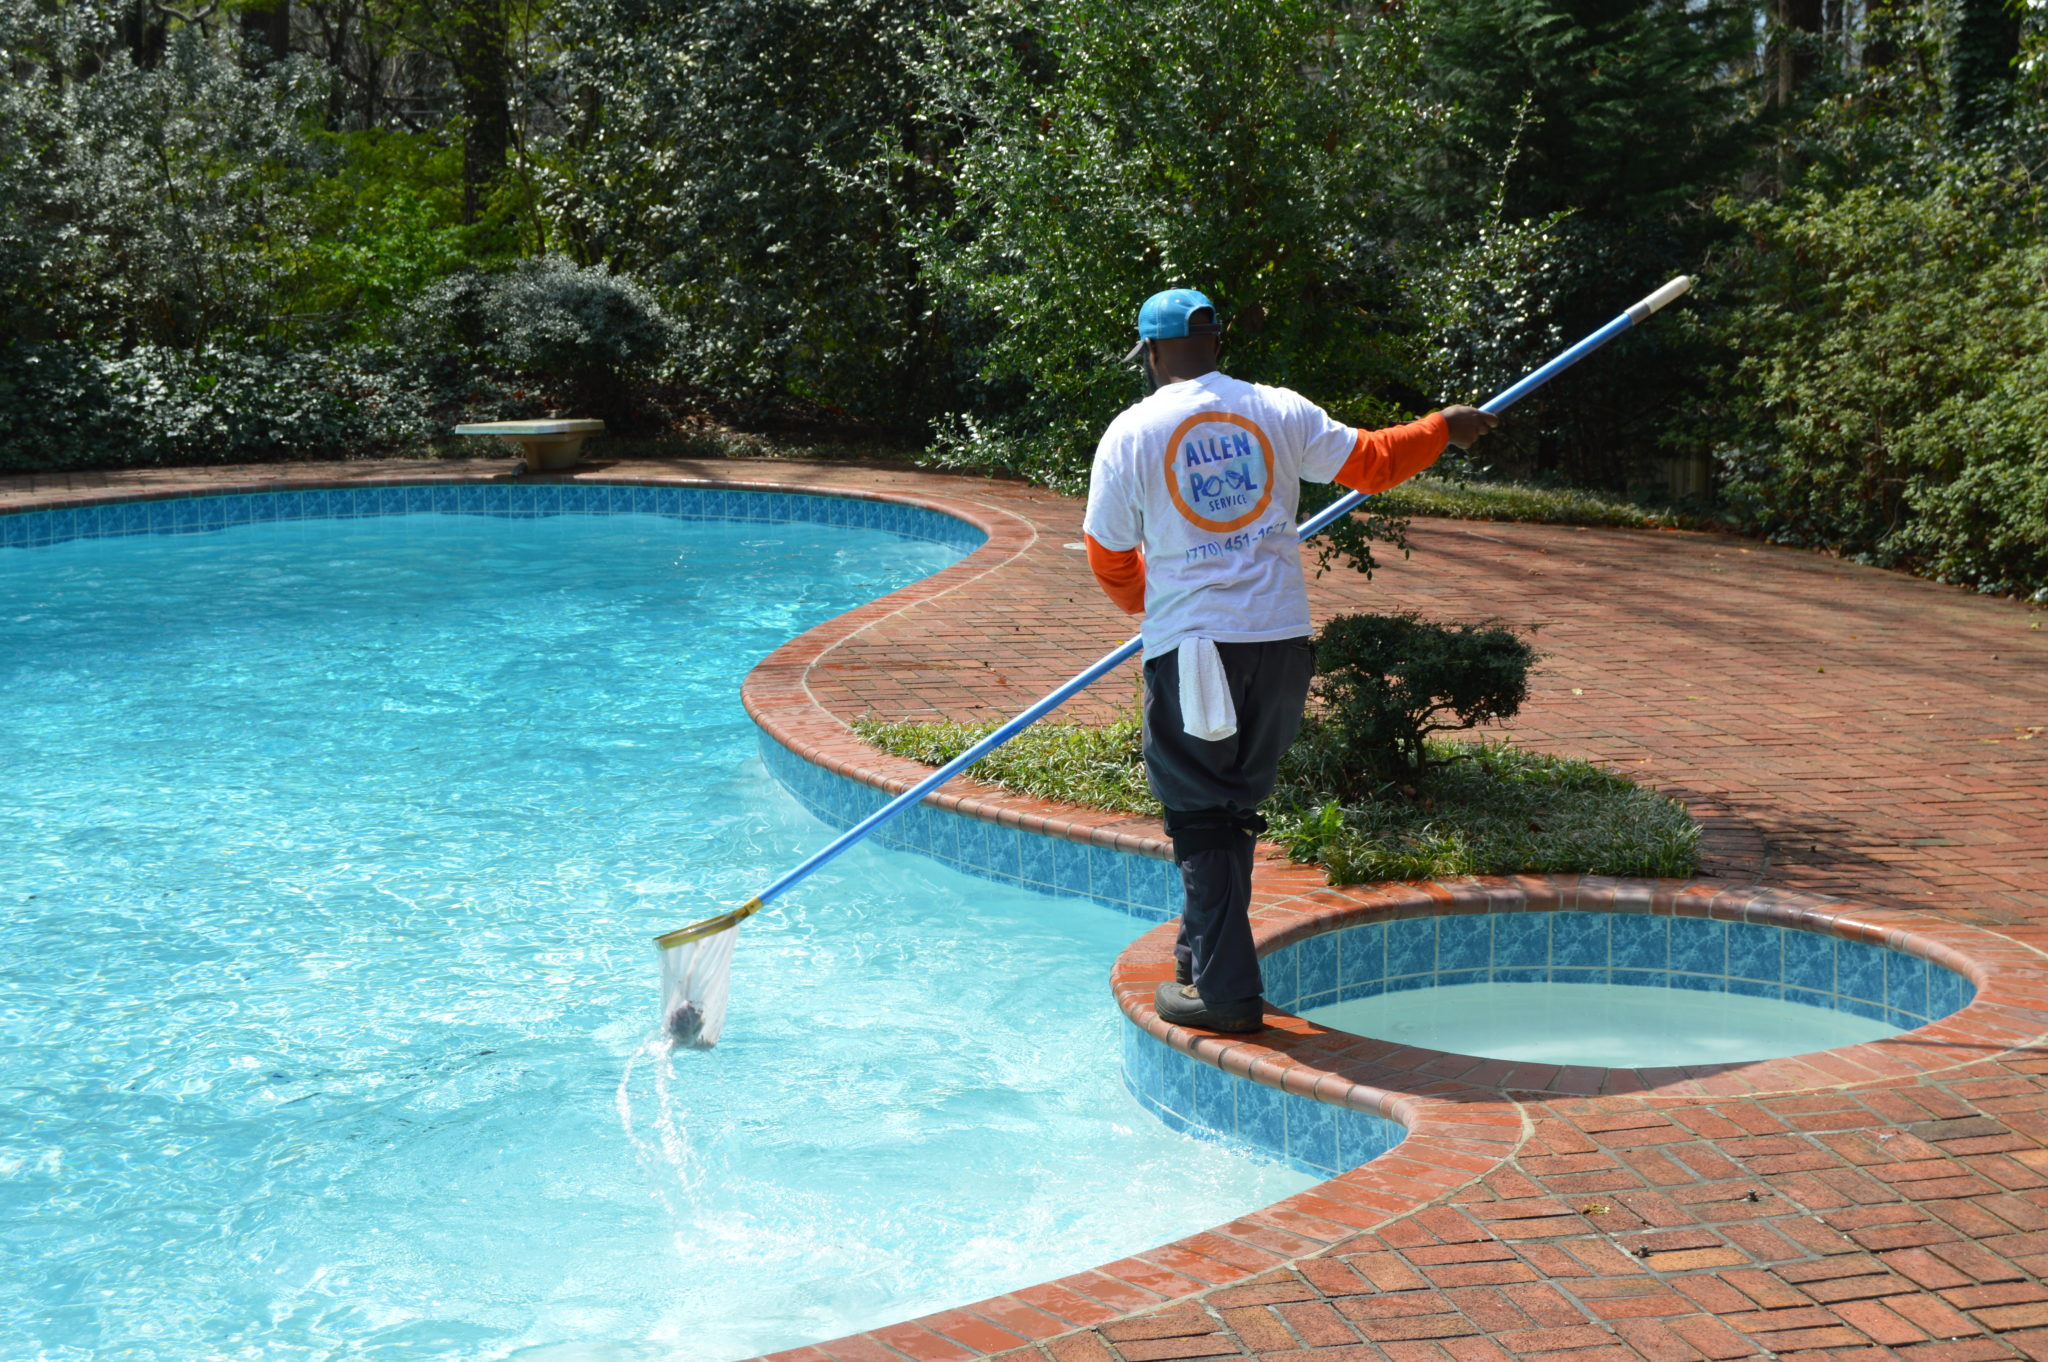 Pool & Water Maintenance, Event Management Service in Bangalore